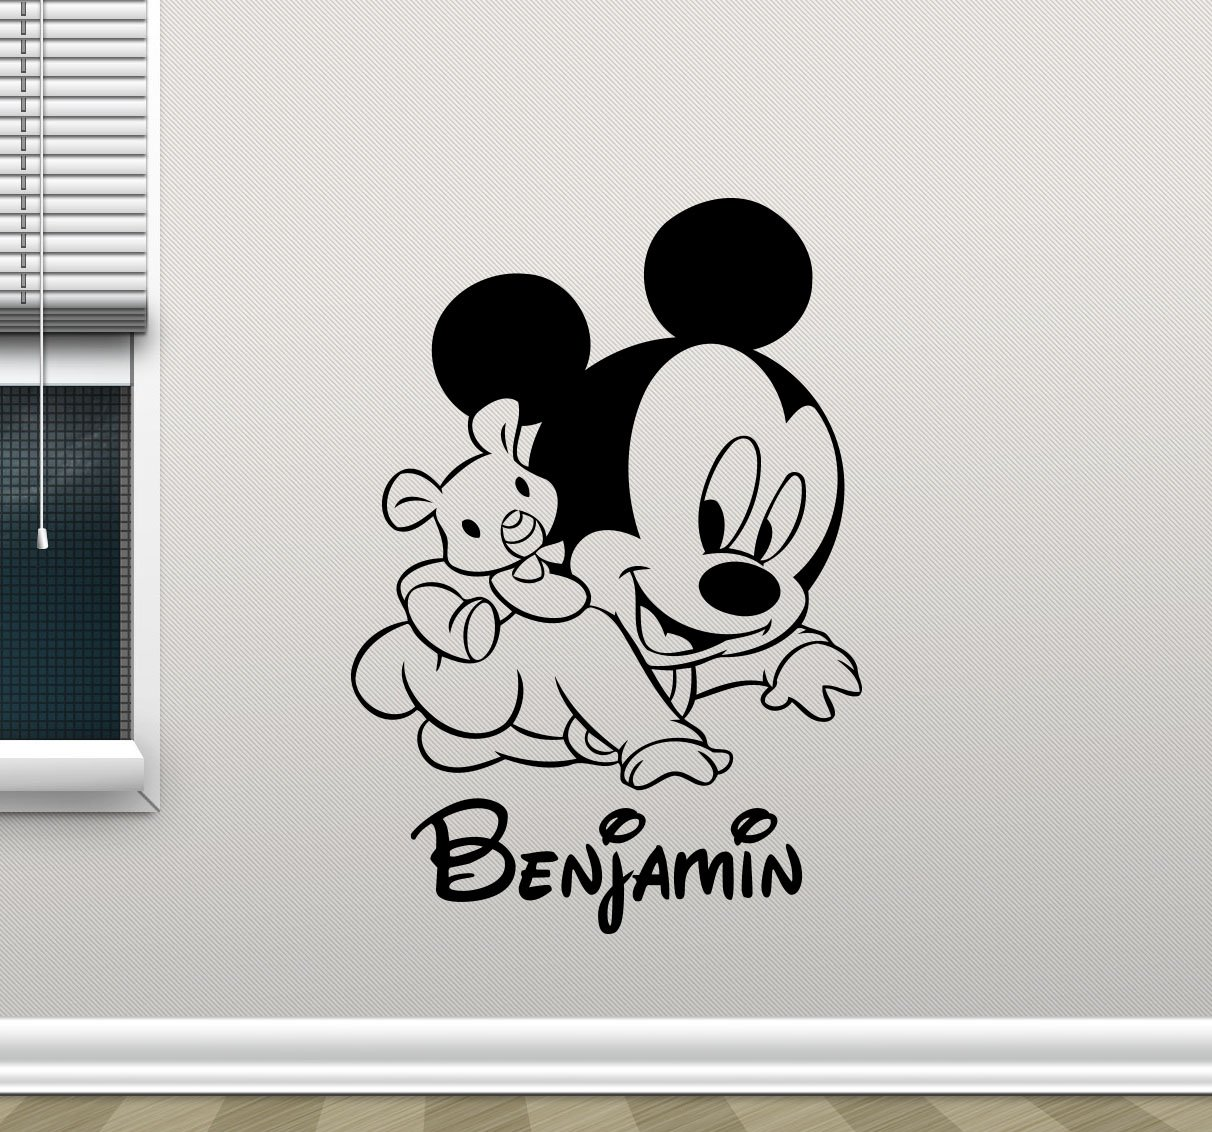 Personalized mickey mouse wall decal custom name walt disney cartoons vinyl sticker baby girl boy customized personal kids room wall art design bedroom